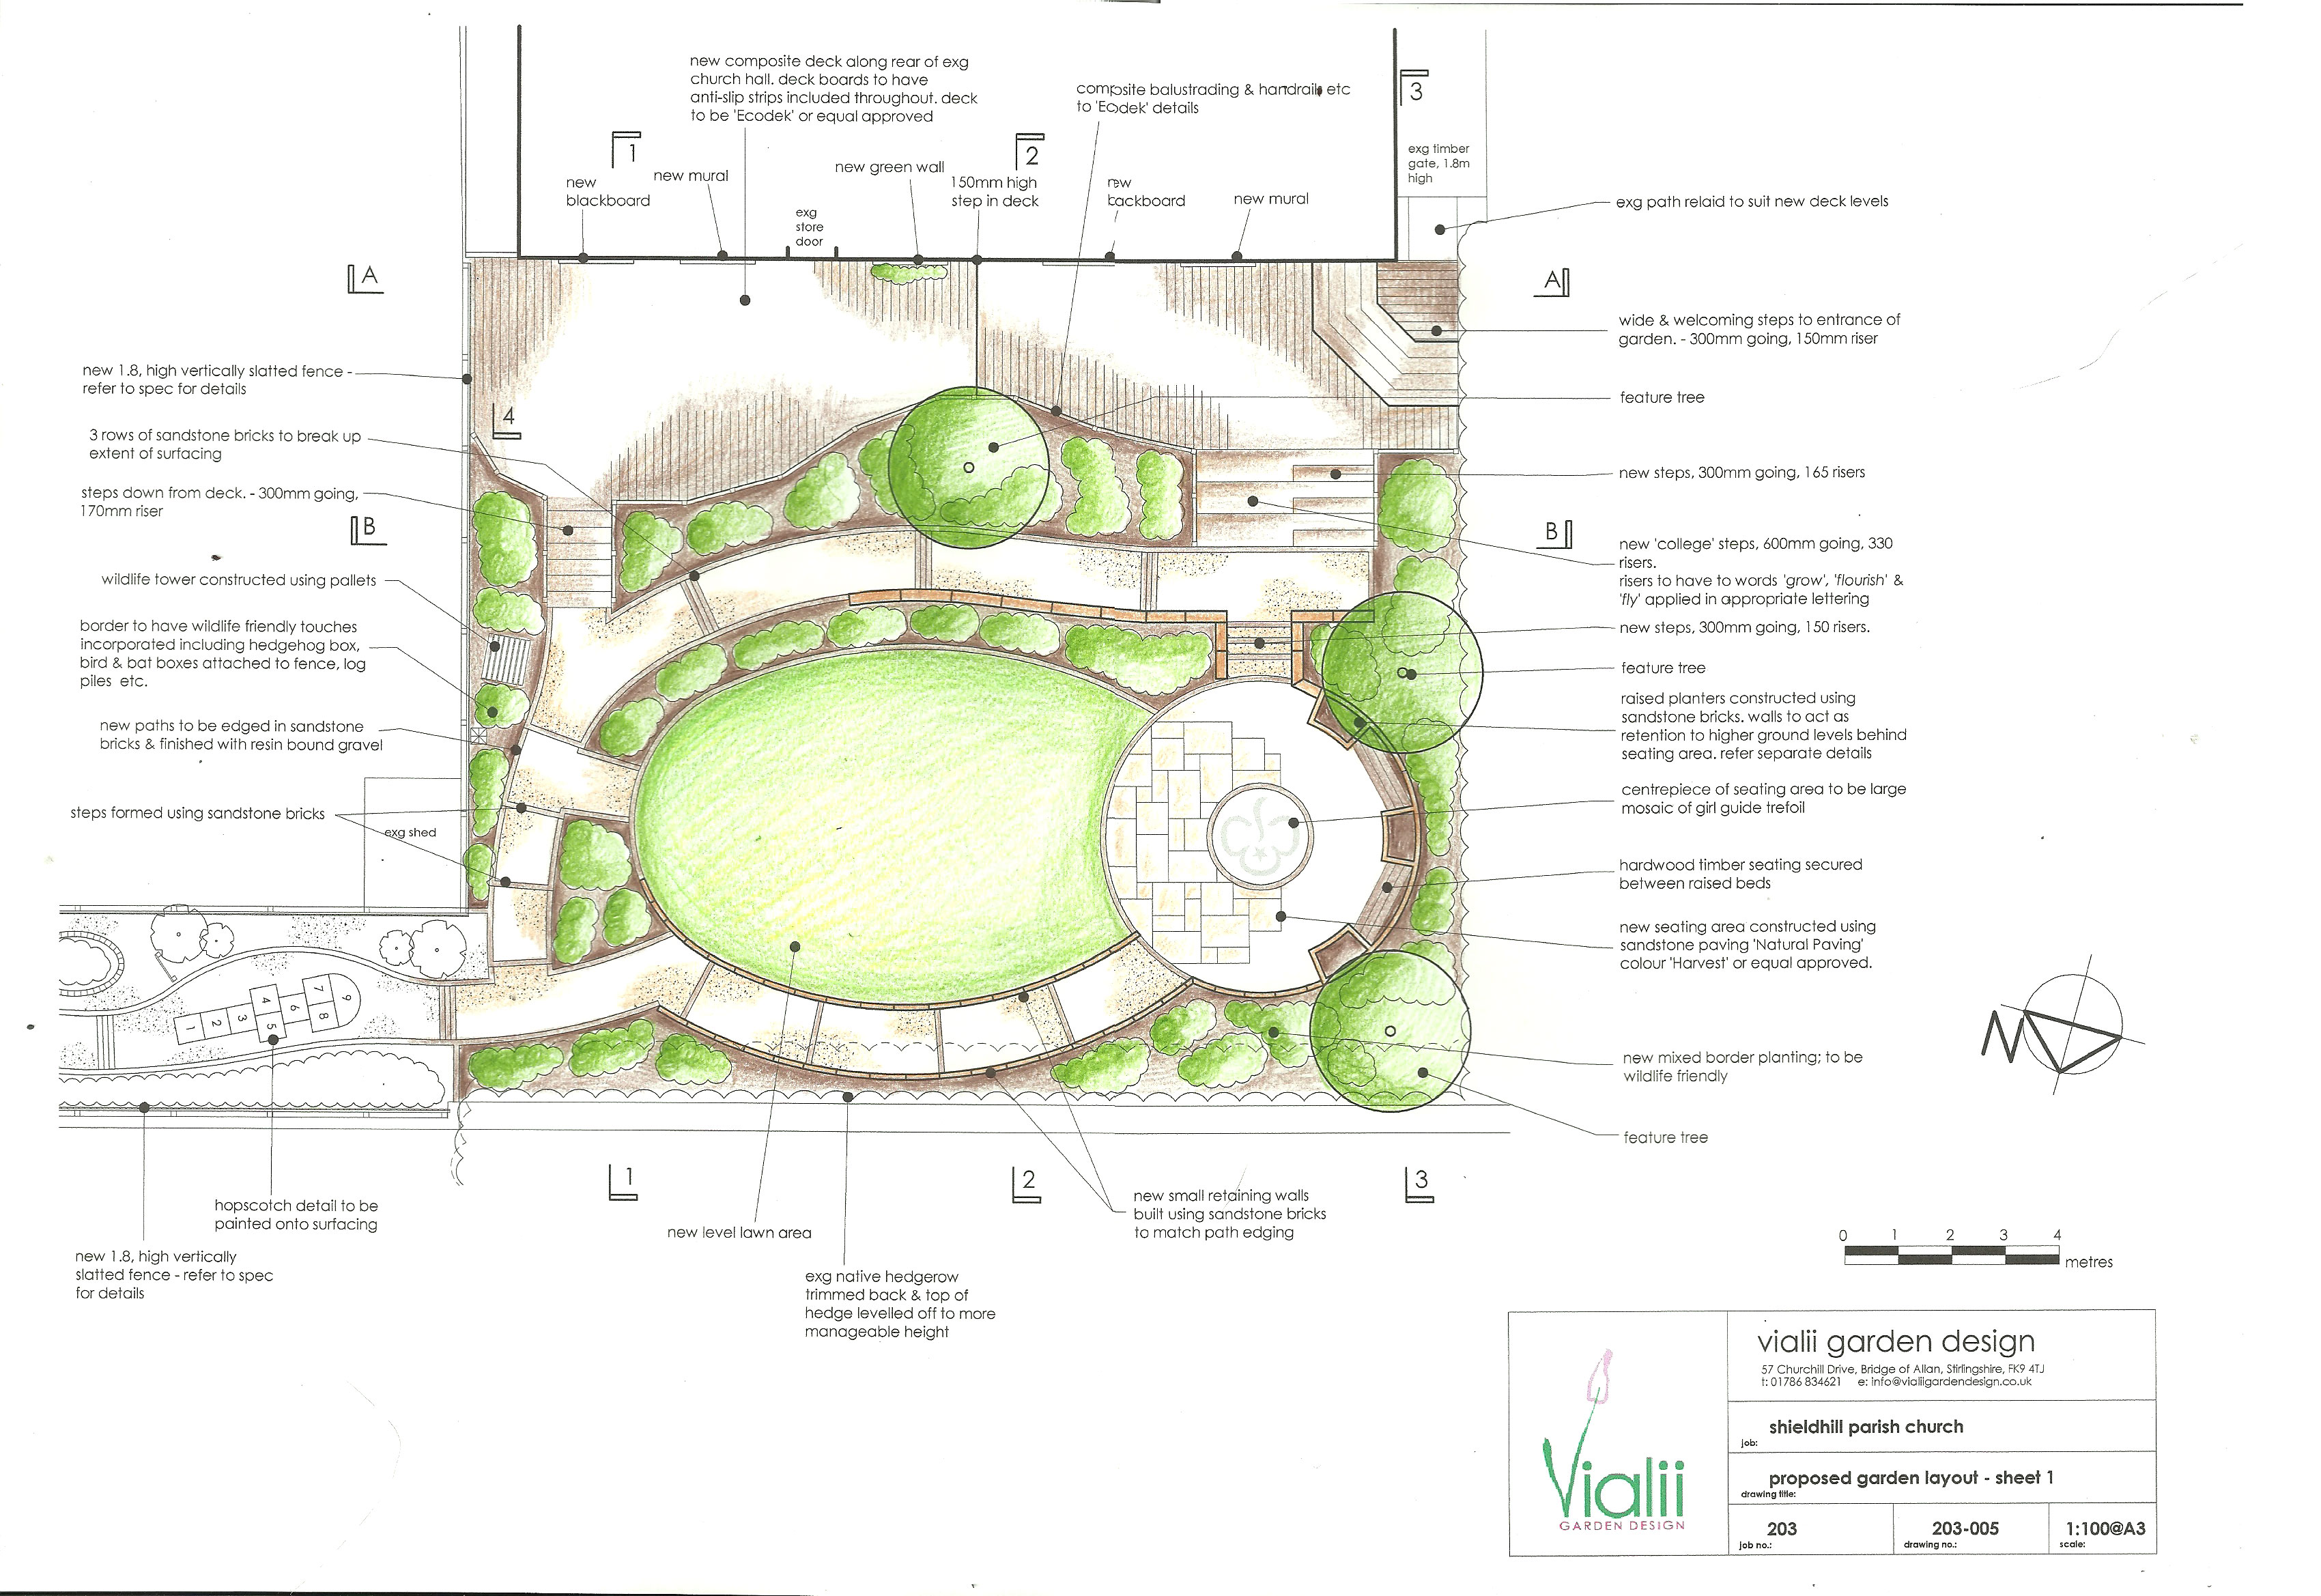 Our design for the Shieldhill garden